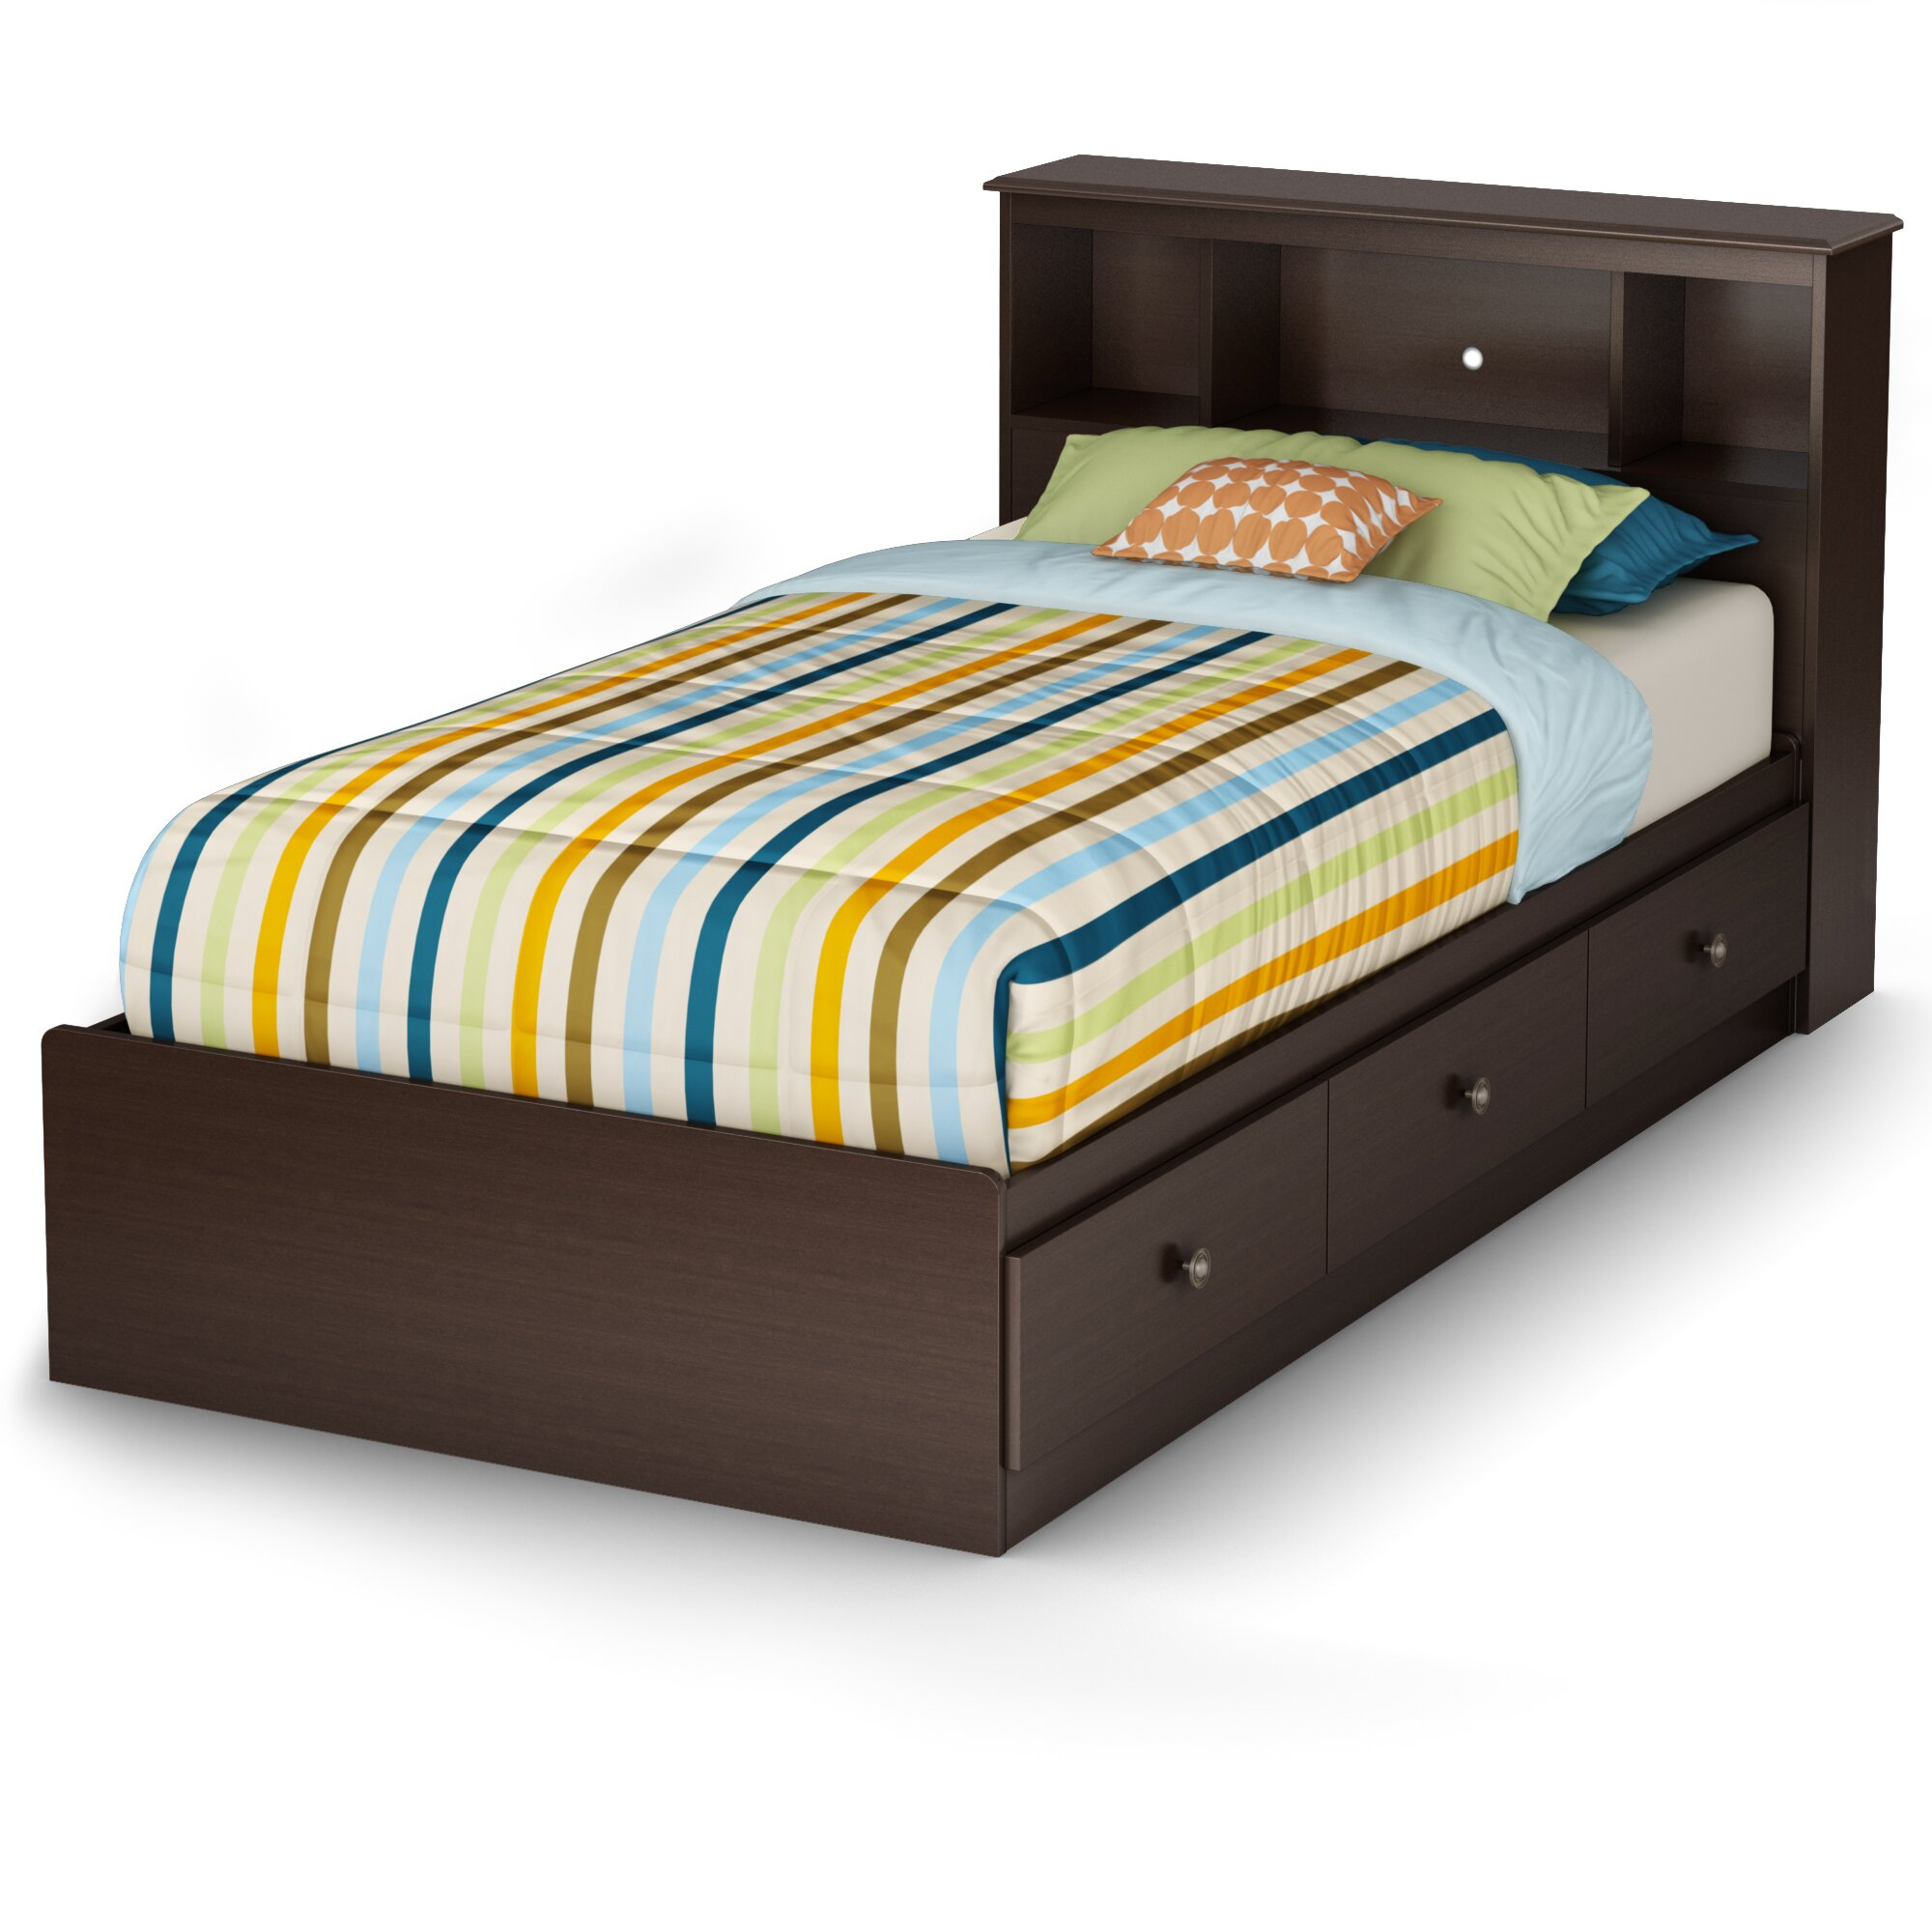 South Shore Bedroom Furniture South Shore Zach Twin Platform Customizable Bedroom Set Reviews